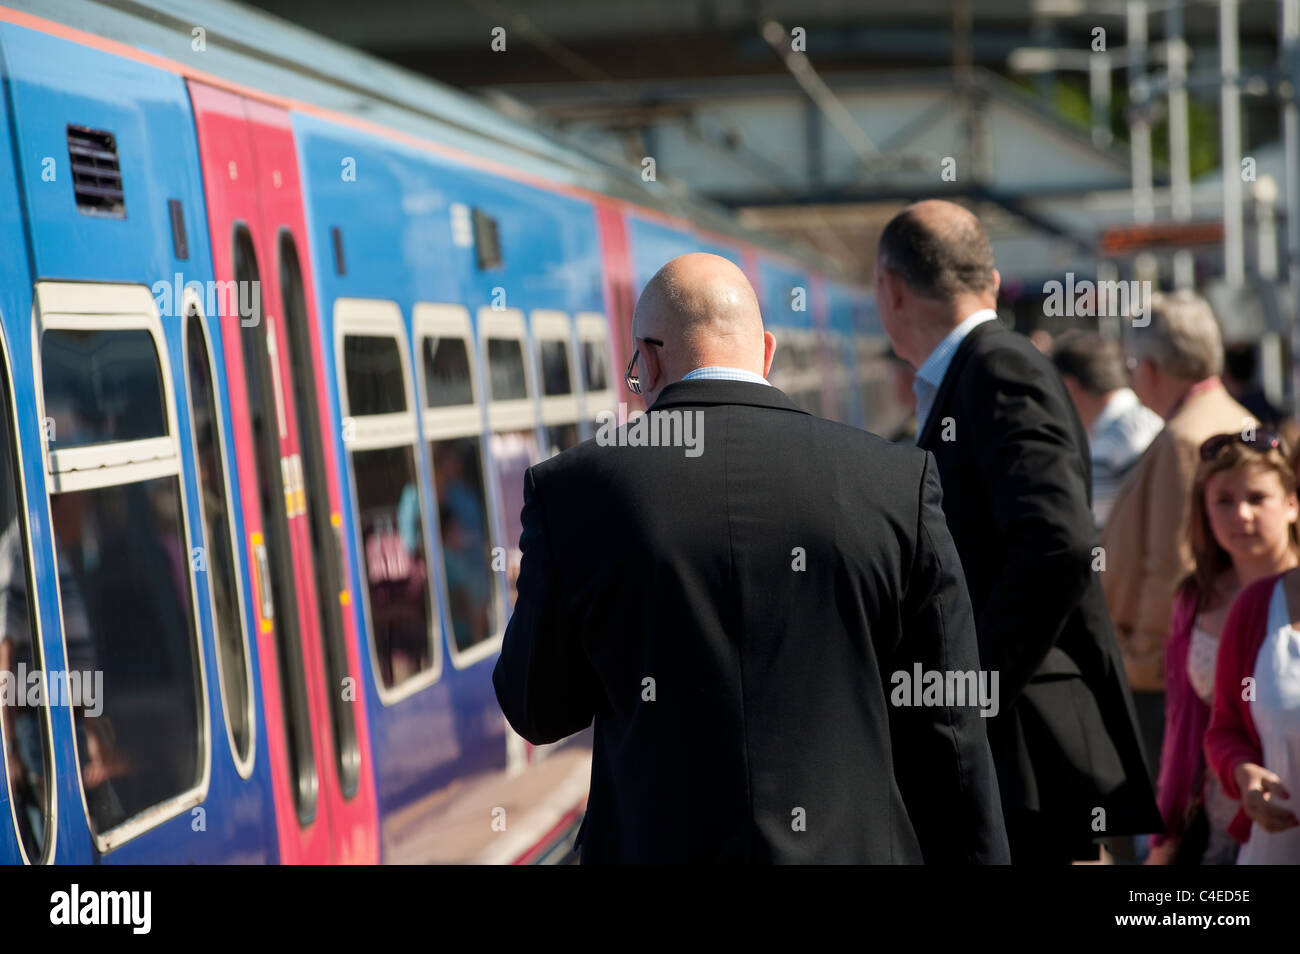 Passengers standing on a railway station platform waiting to board a First Capital Connect train in England. - Stock Image